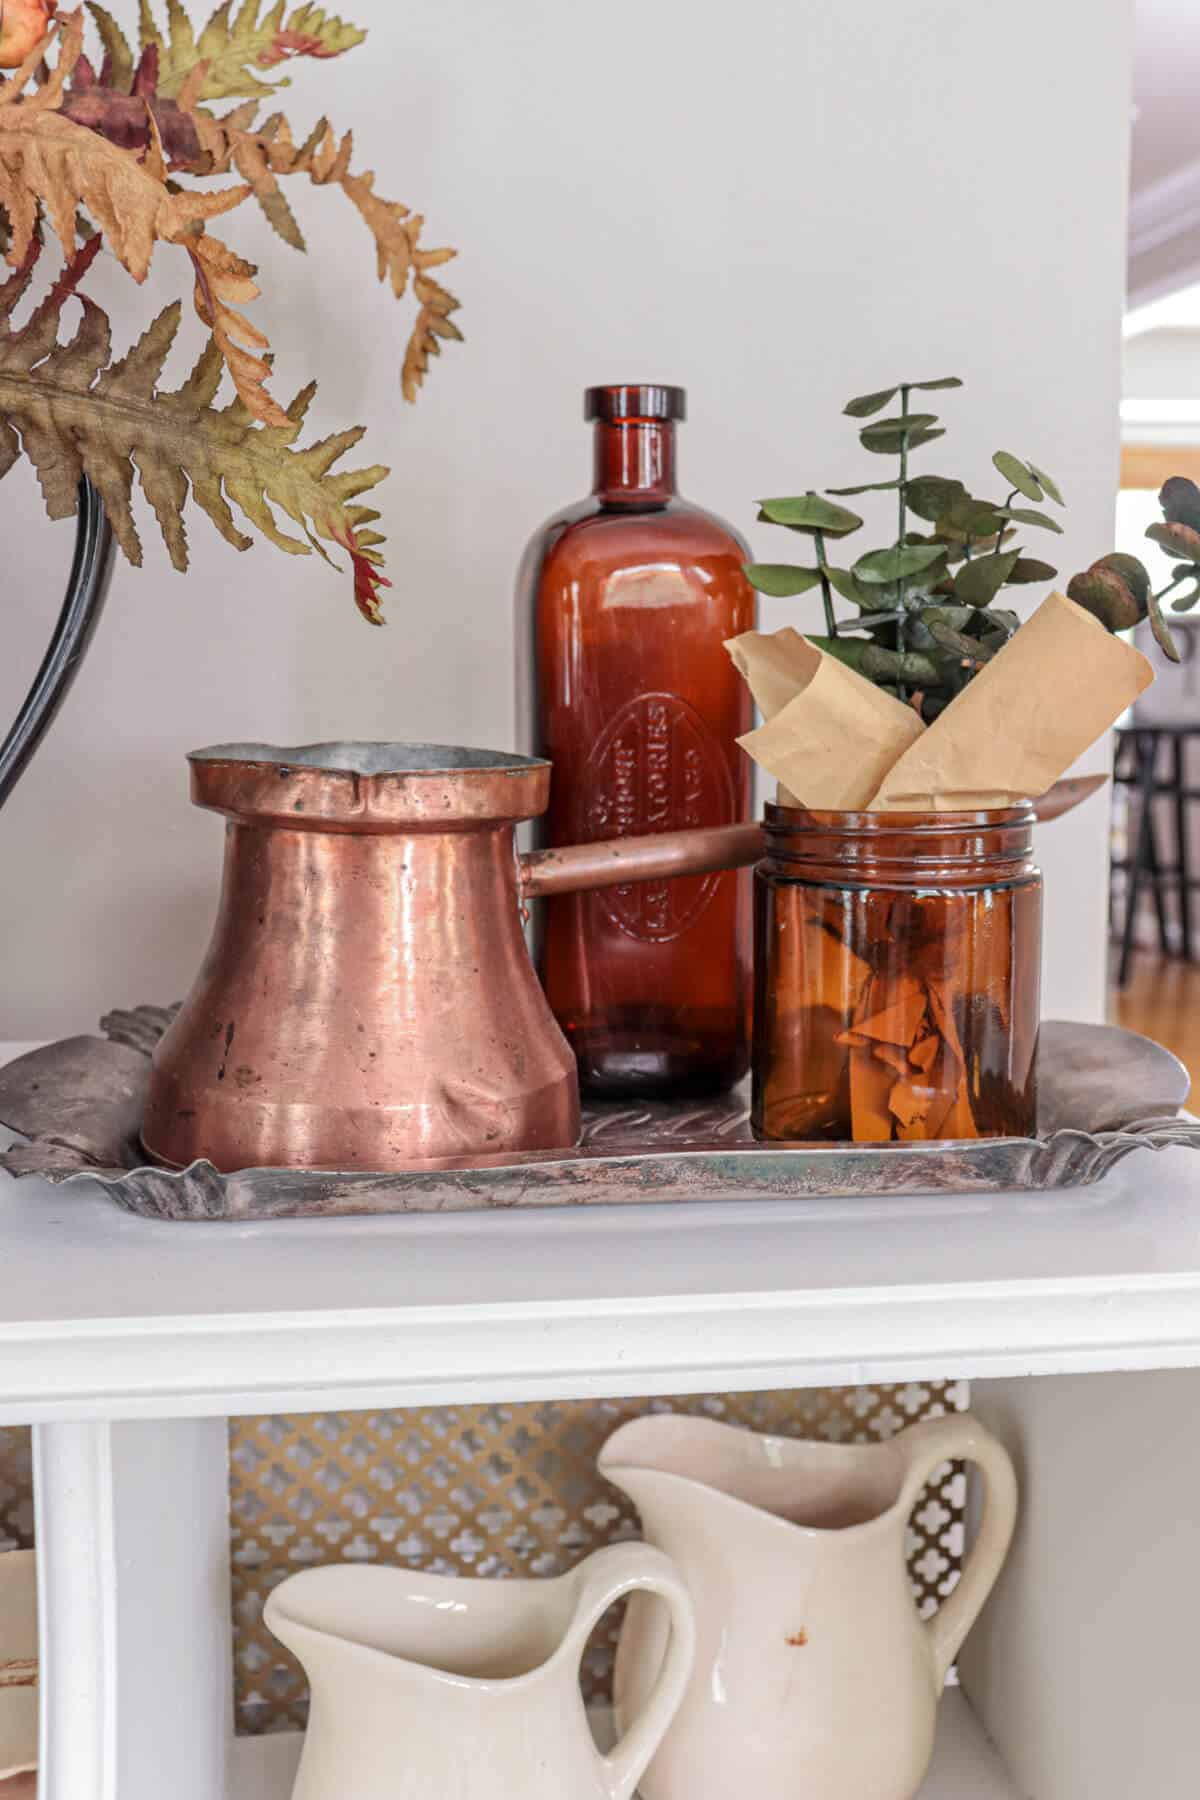 amber bottles and copper elements sitting on a tarnished silver tray